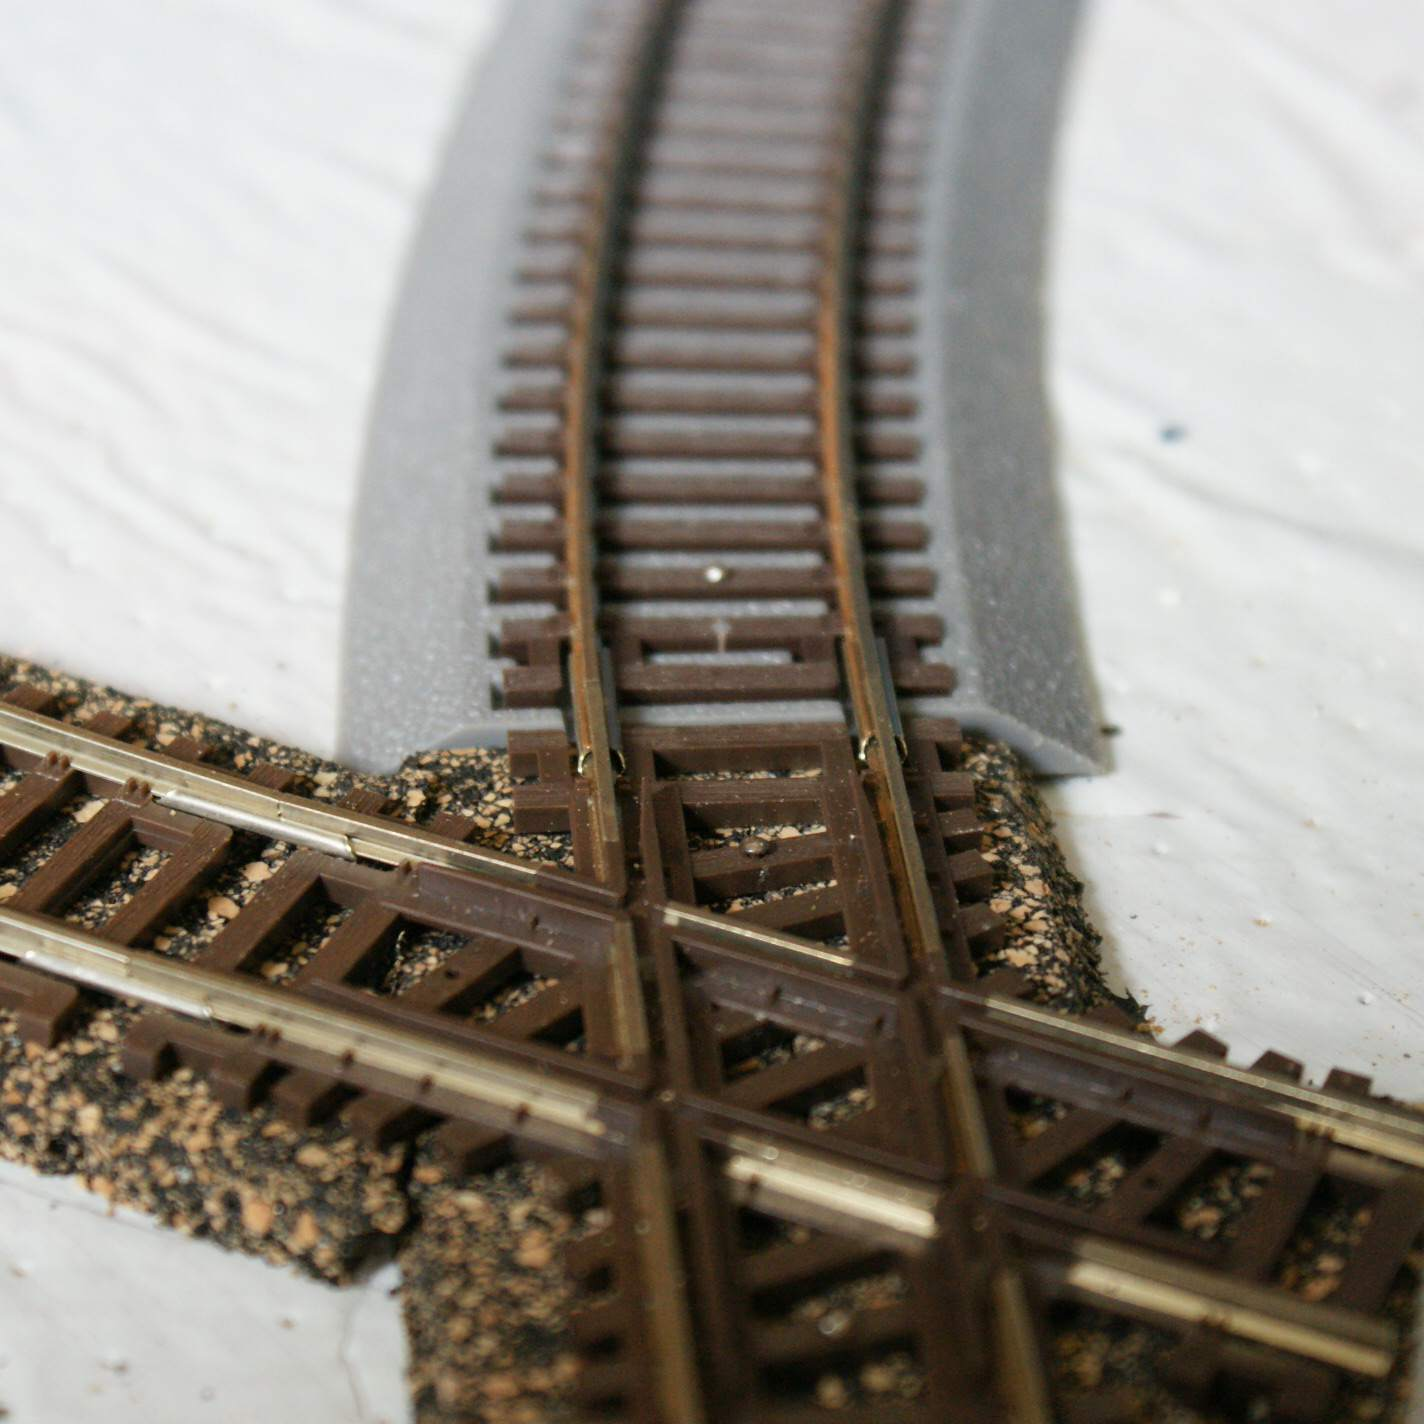 Integrated roadbed tracks and standard tracks can be used together with a little planning and just a few modifications.